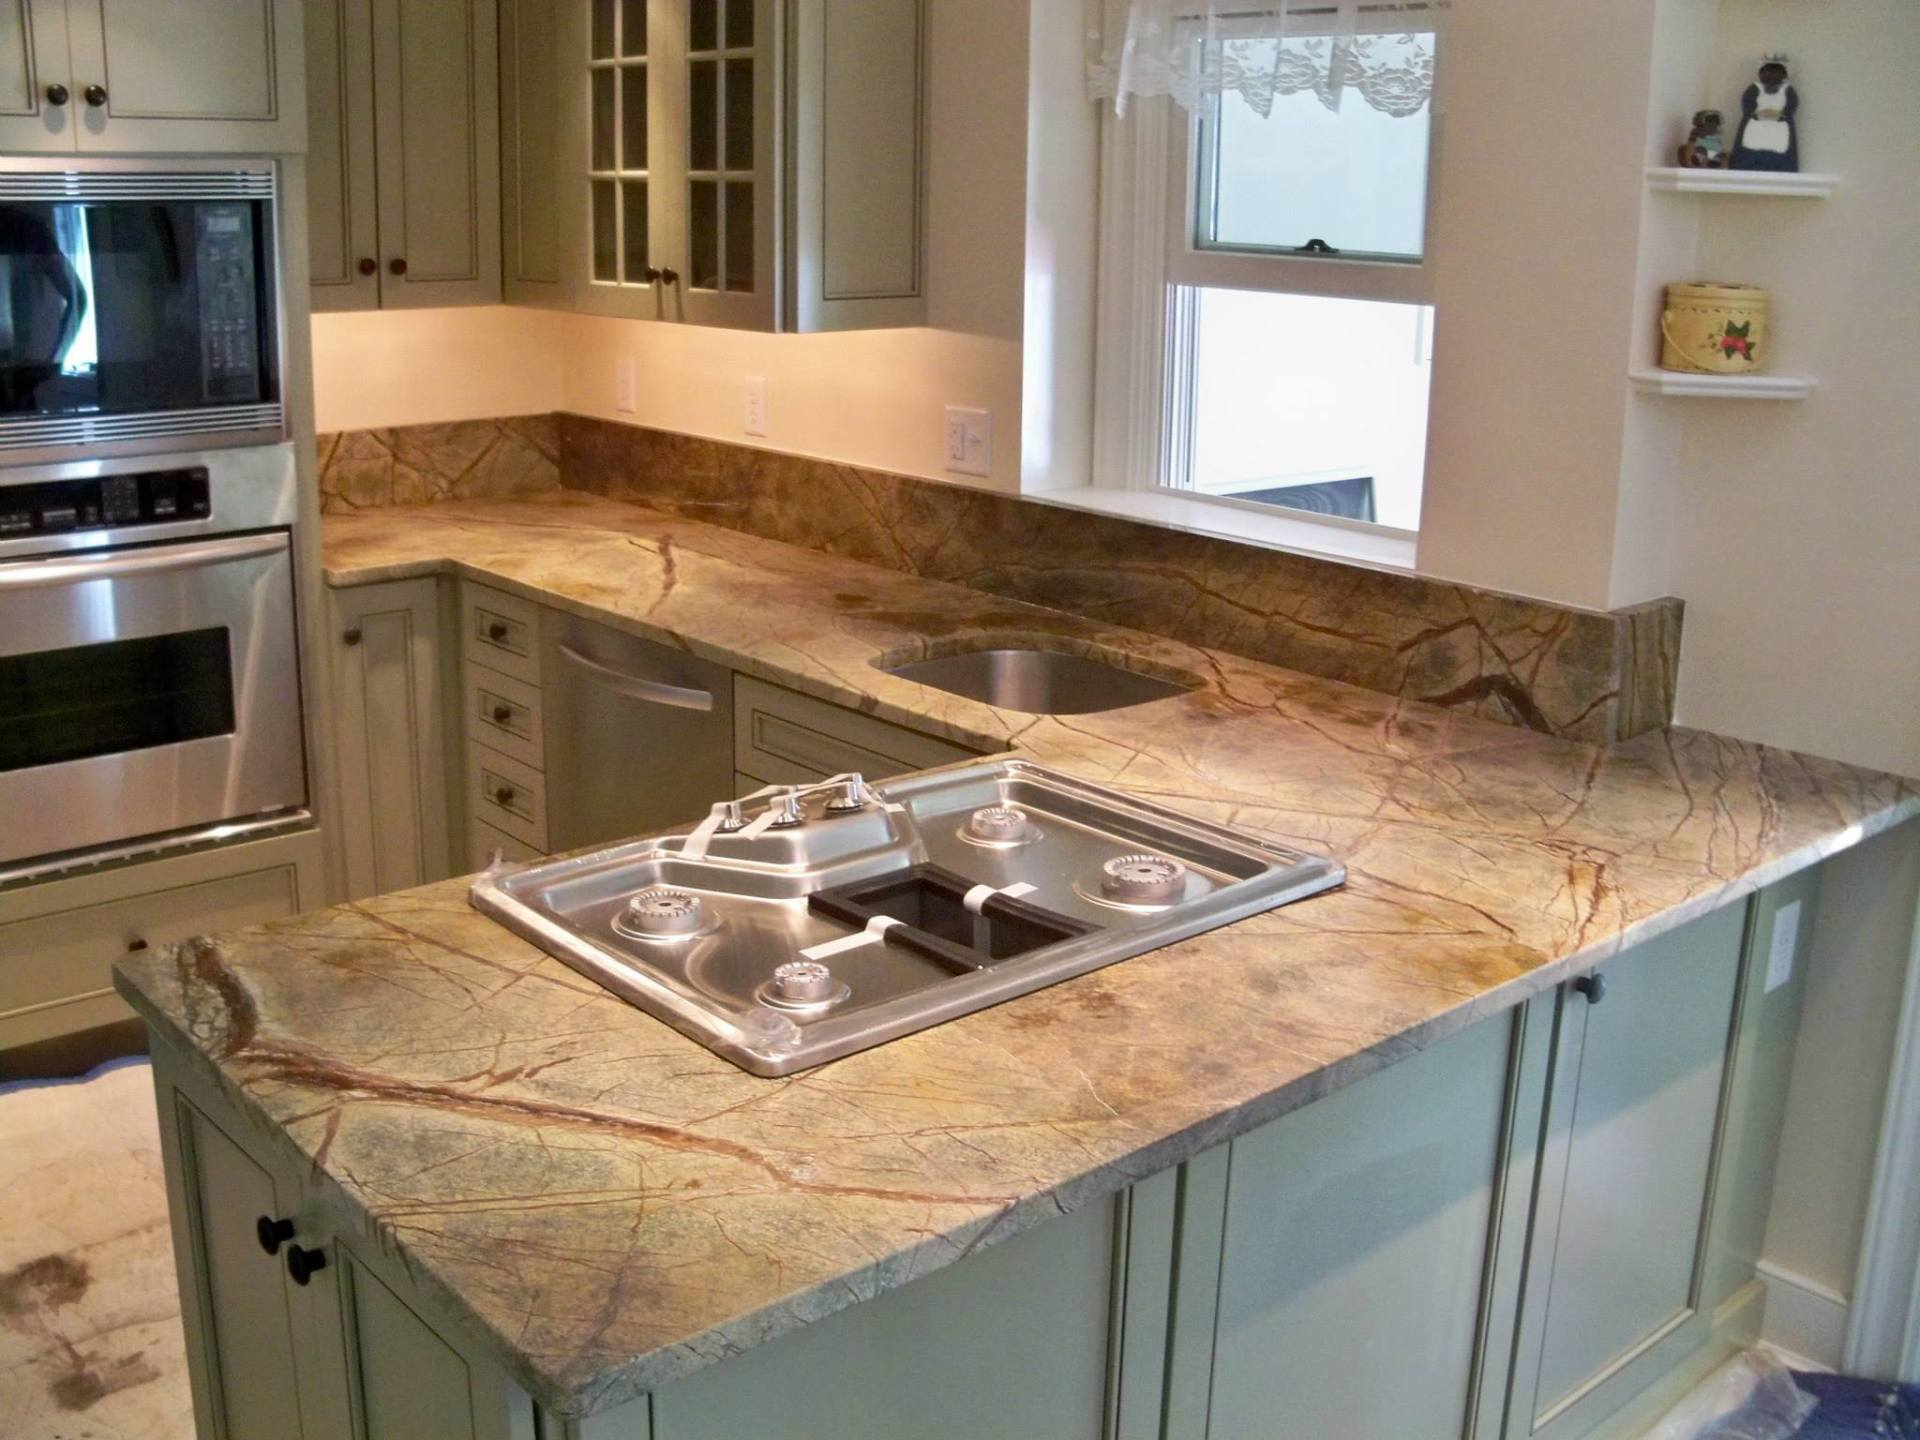 Rainforest Green Stone Countertops